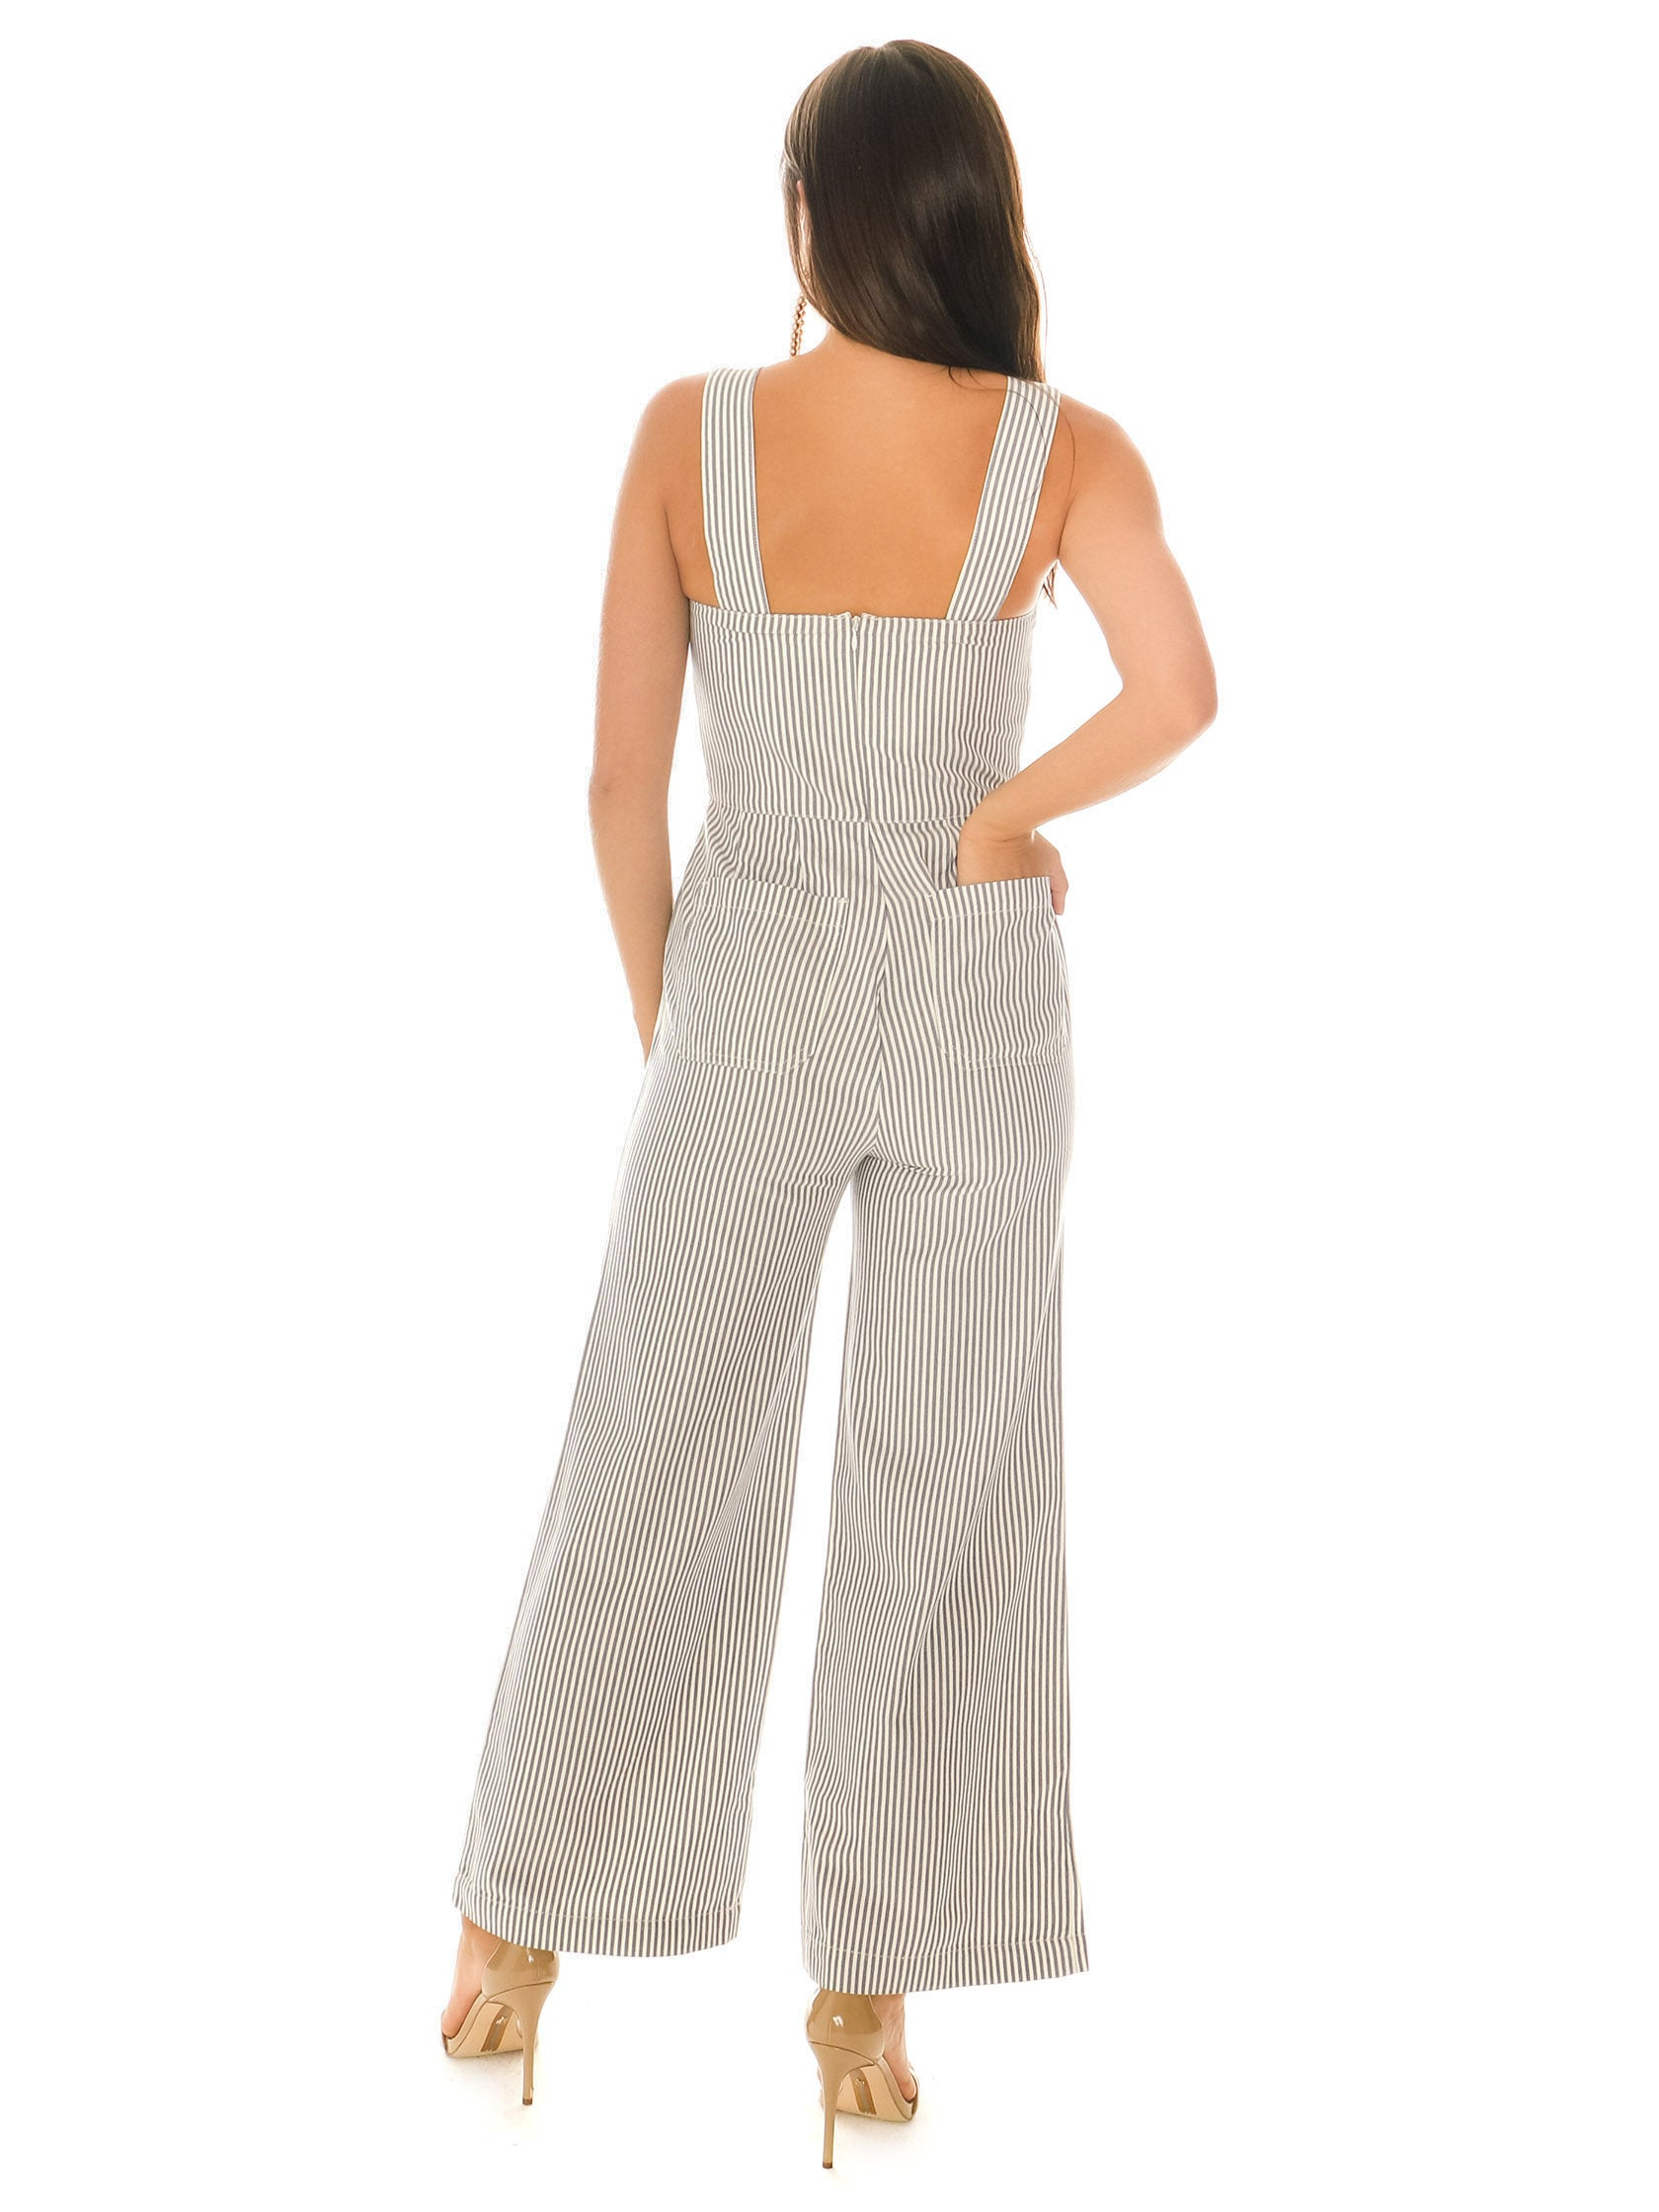 Girl wearing a jumpsuit rental from ROLLAS called Sailor Stripe Jumpsuit